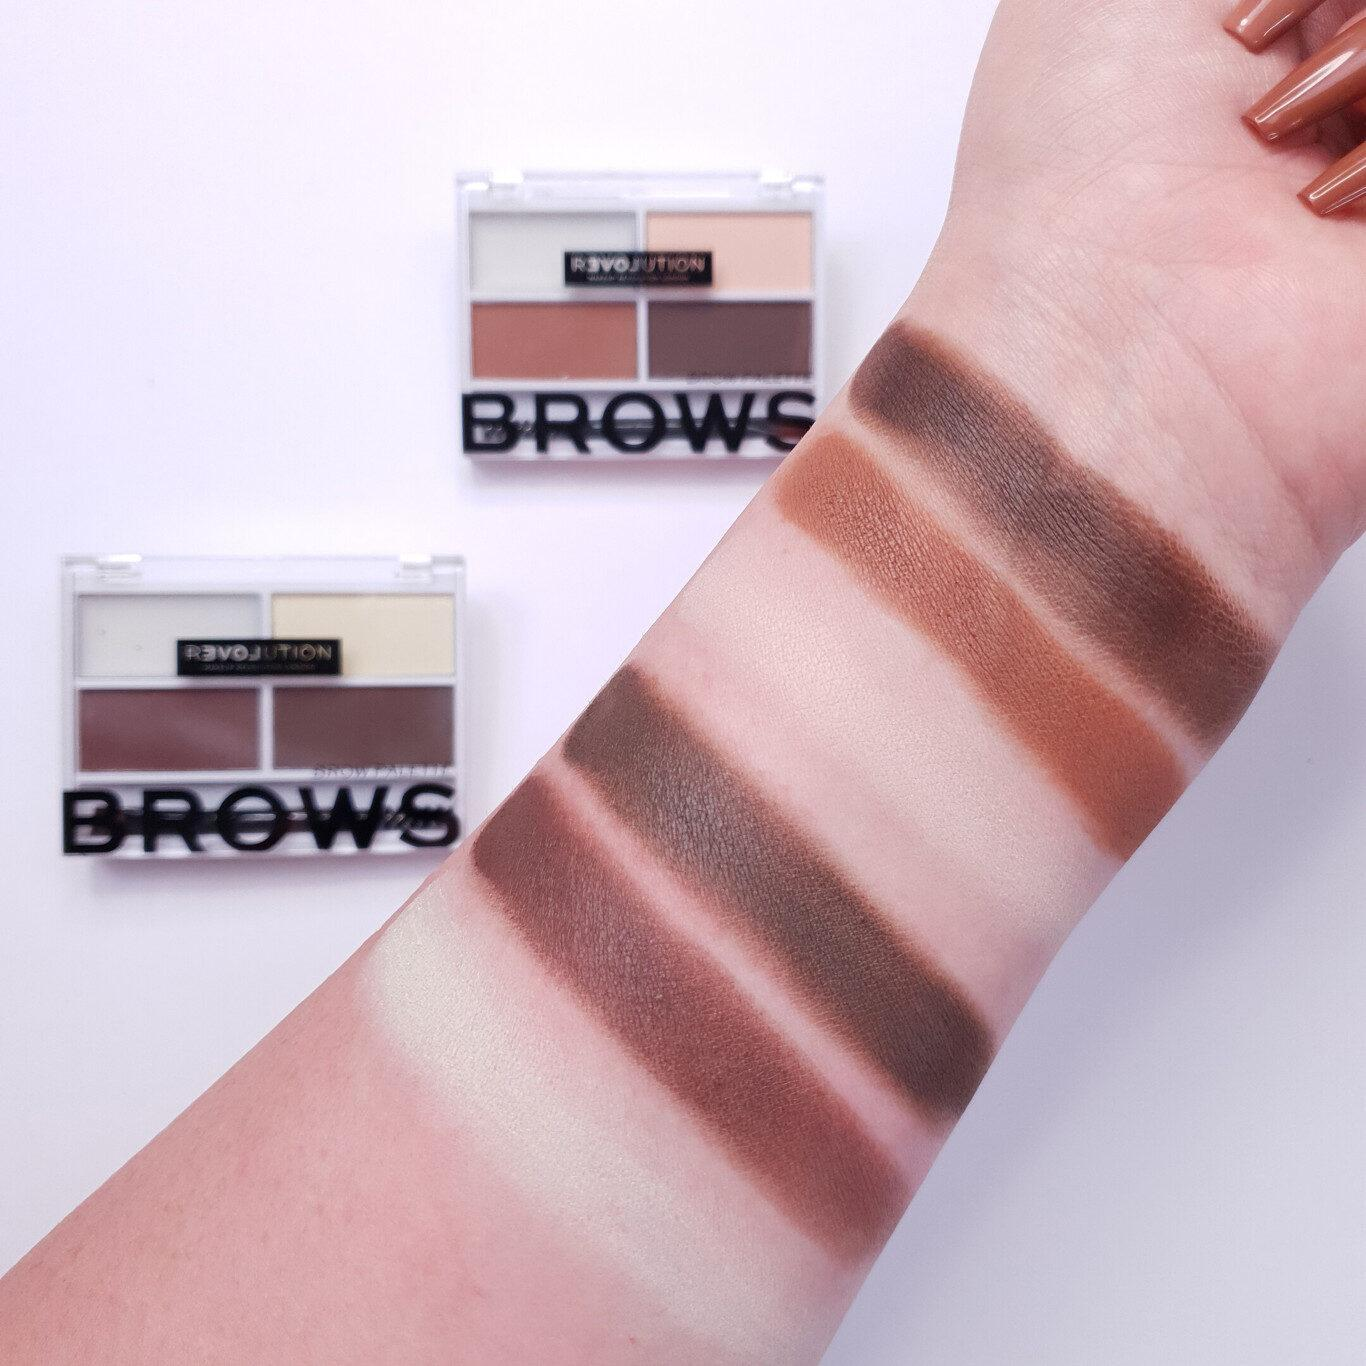 ReLove by Revolution Colour Cult Brow Palette Arm Swatches